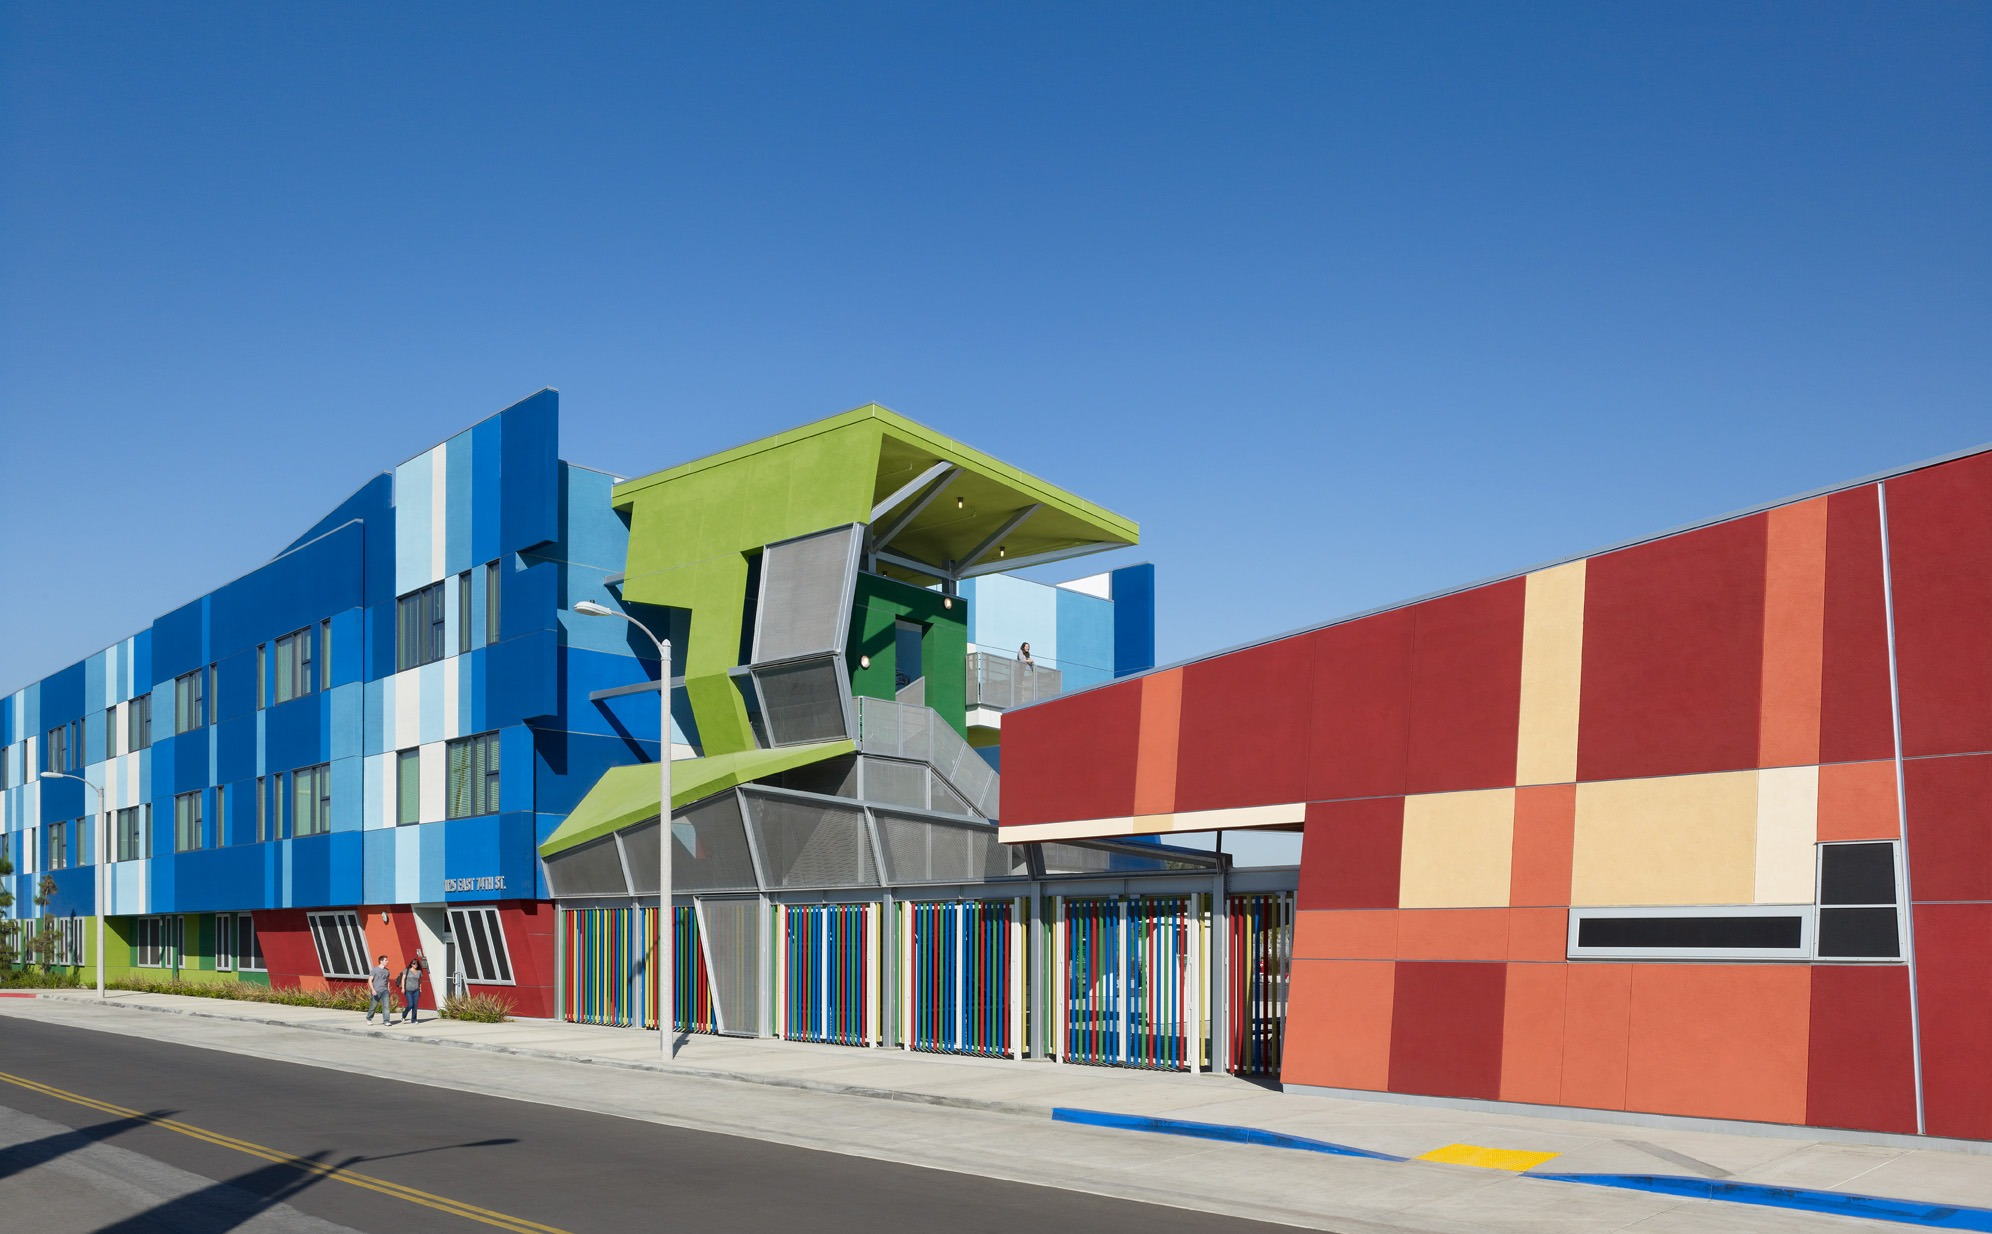 LAUSD South Region Elementary School